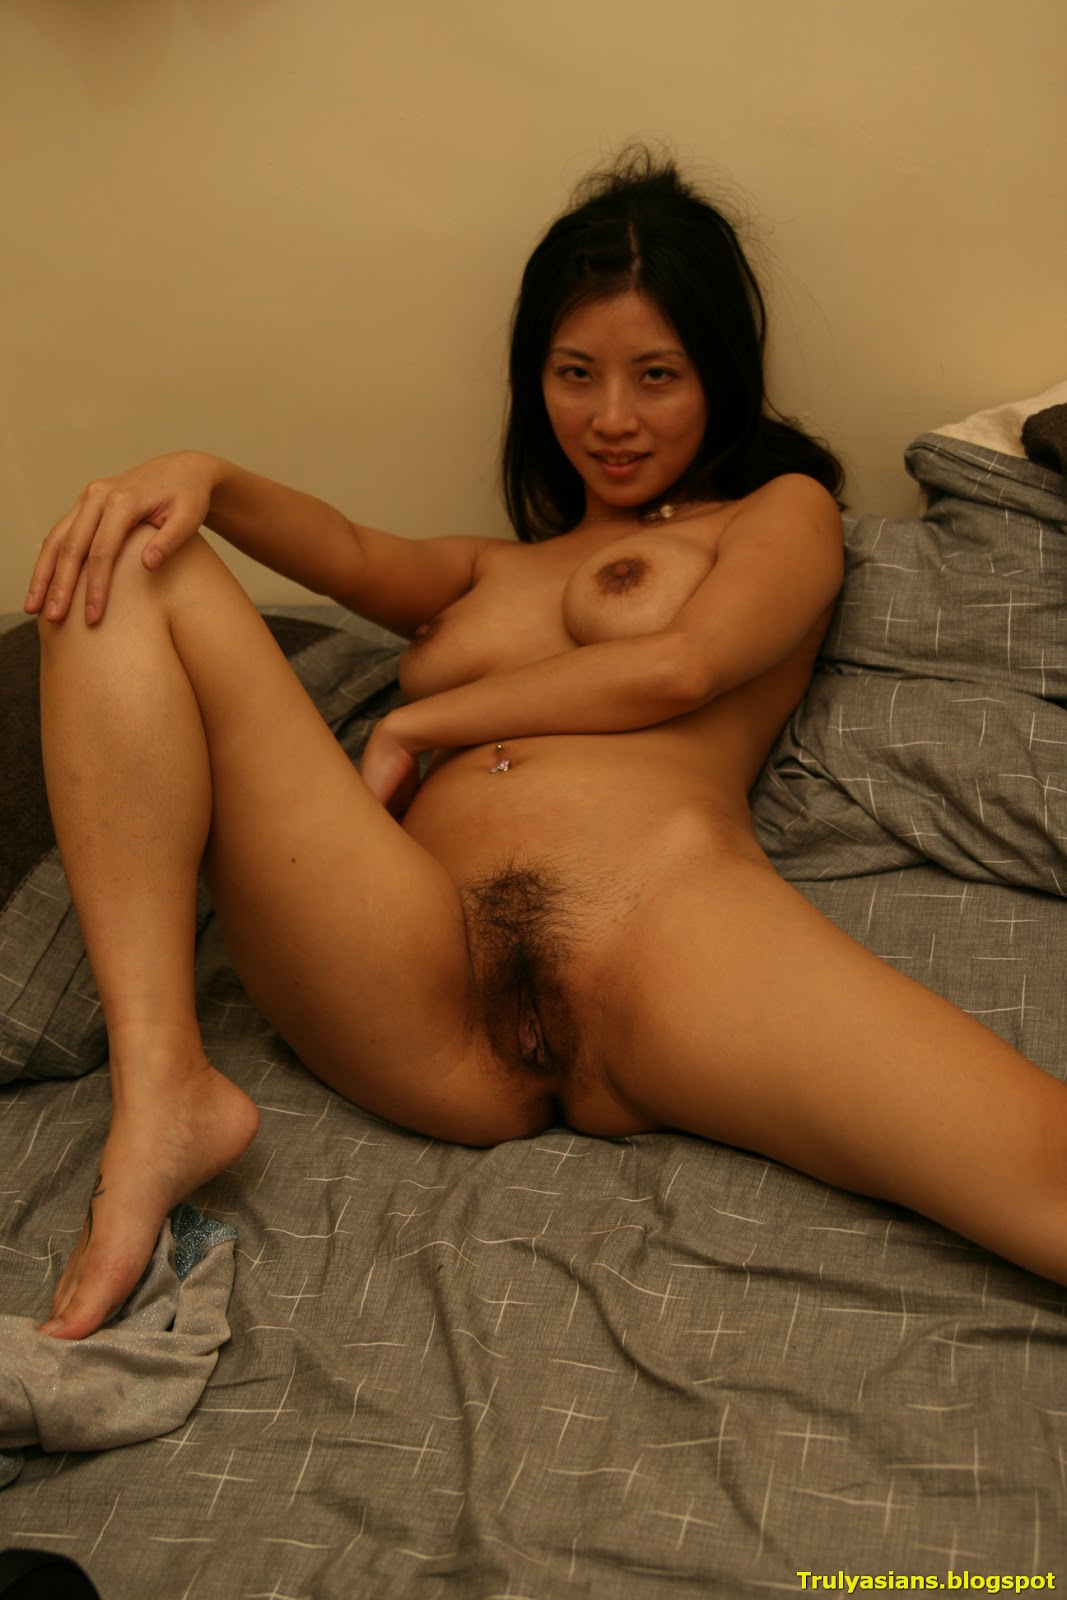 amateur from oregon nude astoria